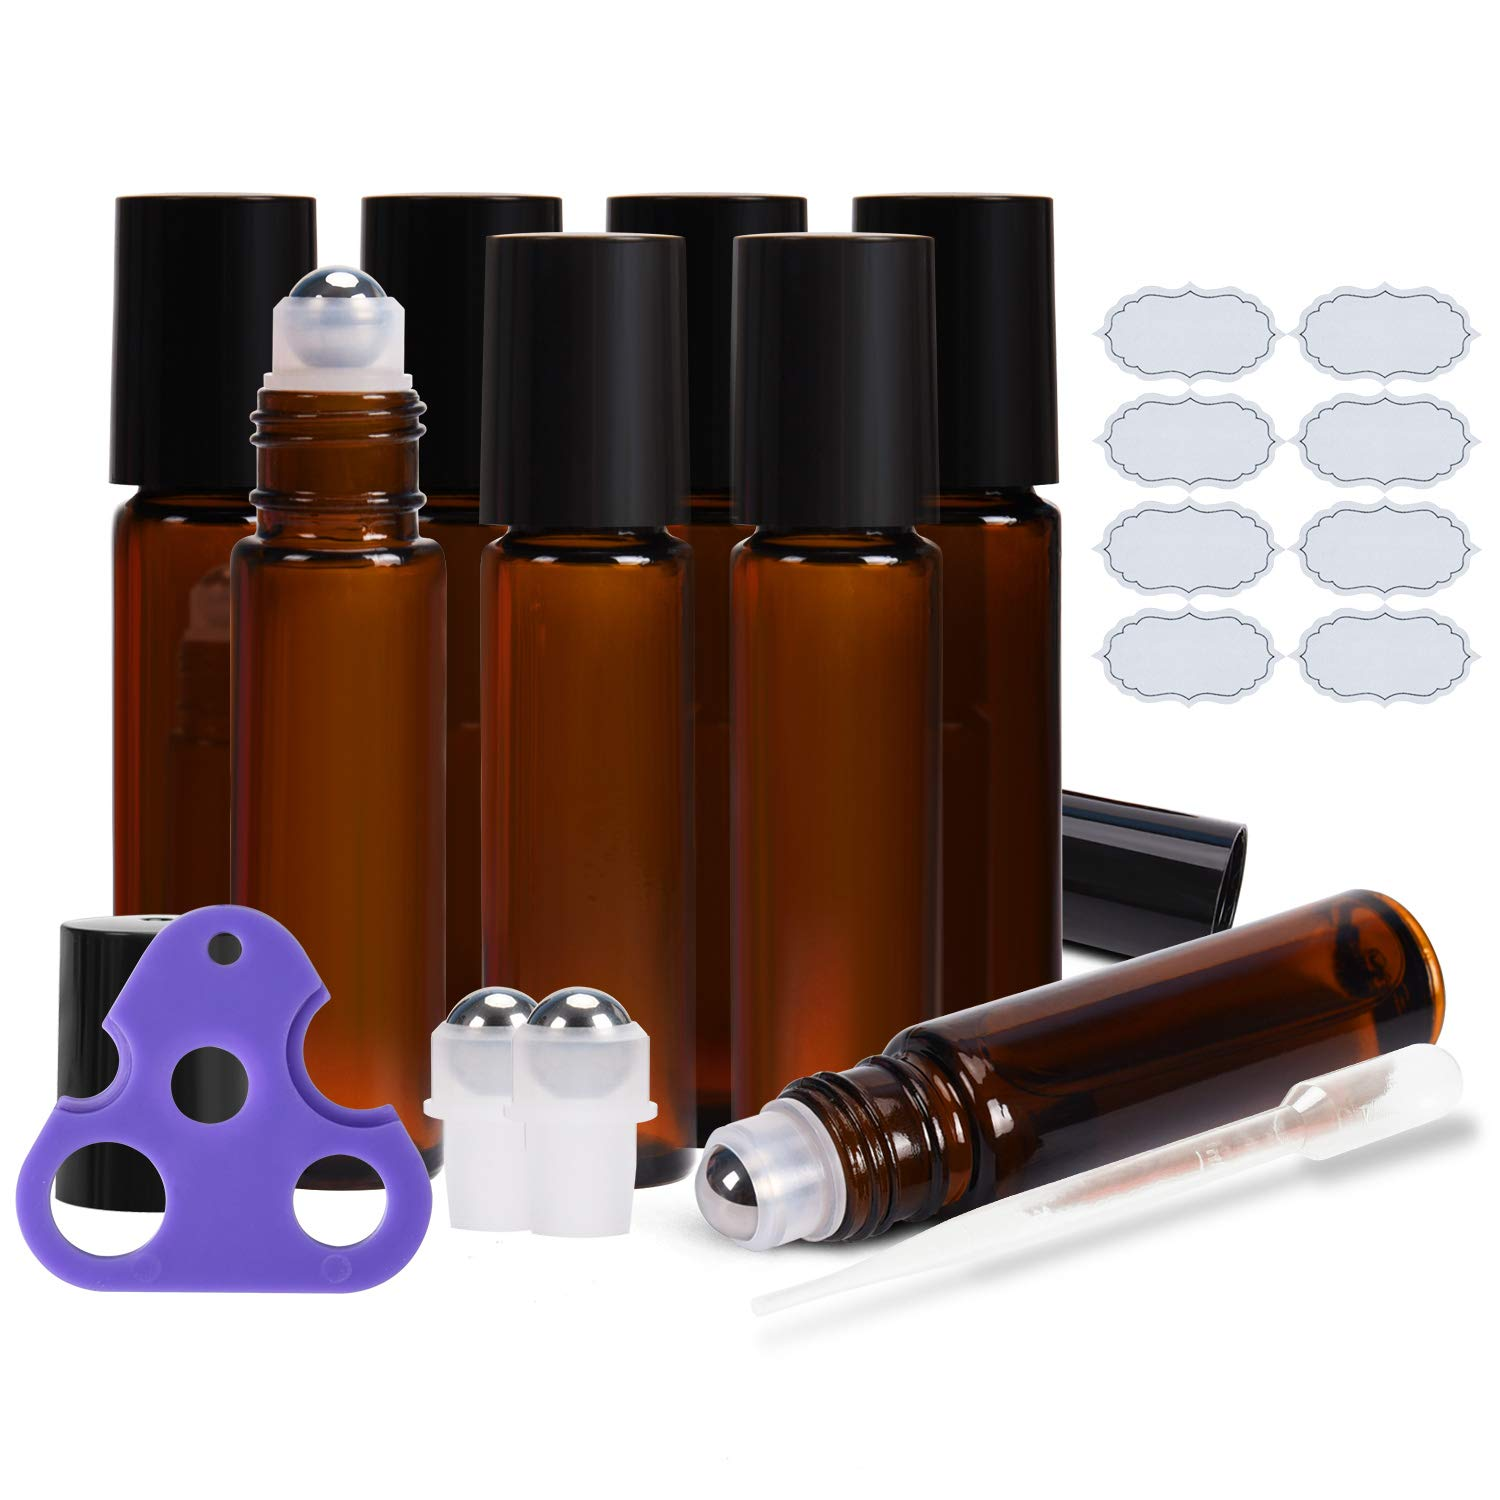 100% Original Best Essential Oil Blue Bottle Supplier - 10ml Amber Glass Roll on Bottle with Stainless Steel Roll Ball –  Hoyer